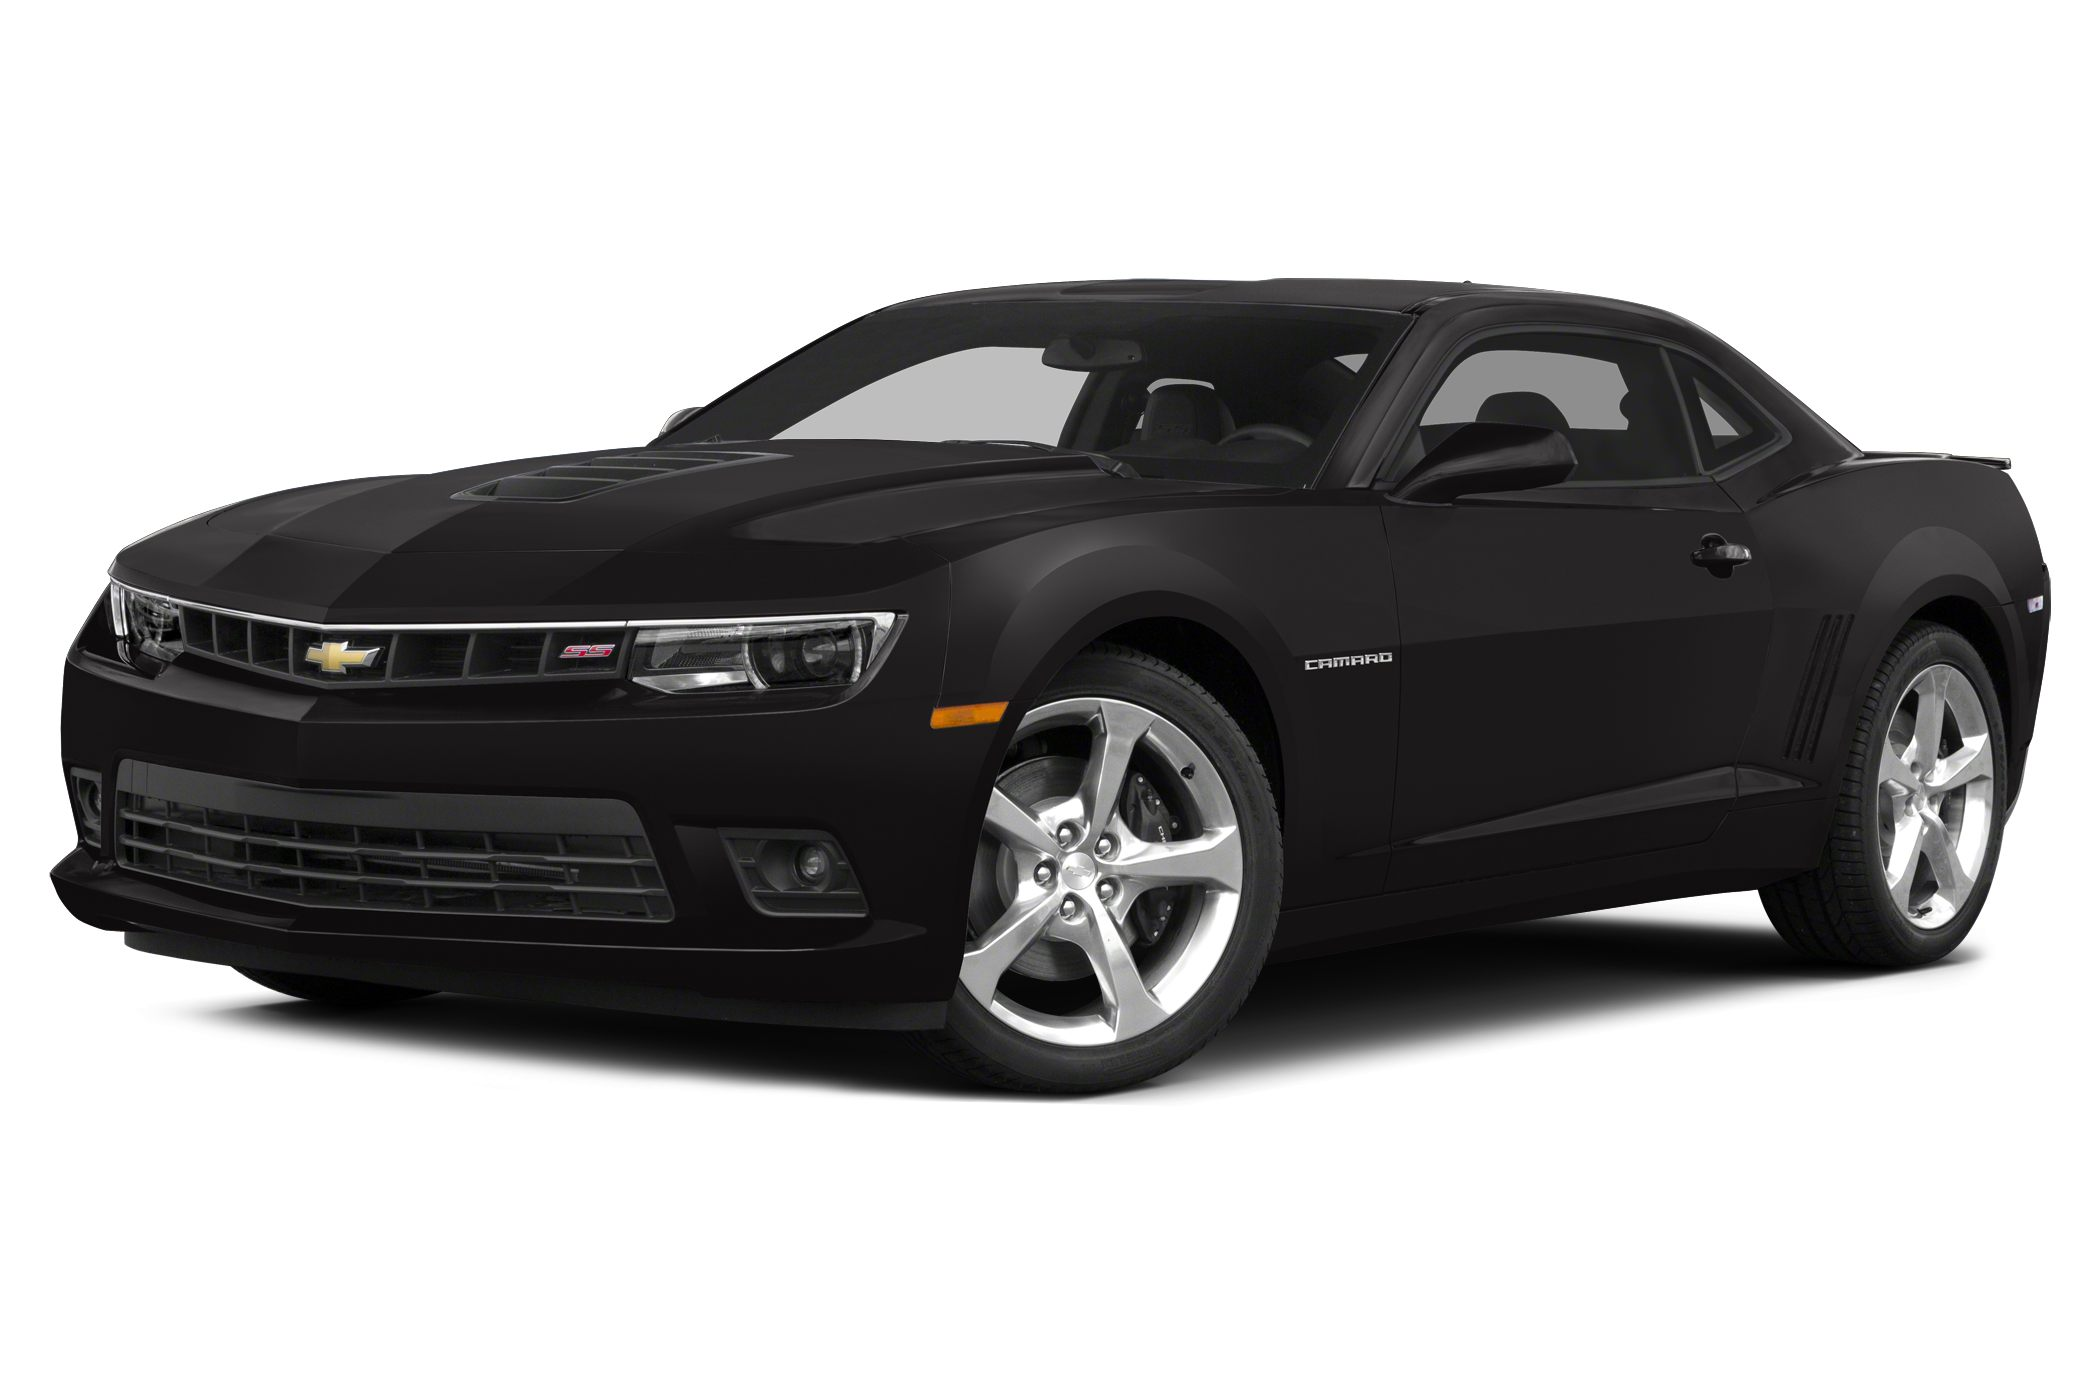 2014 Chevrolet Camaro SS w/2SS 2dr Coupe Specs and Prices